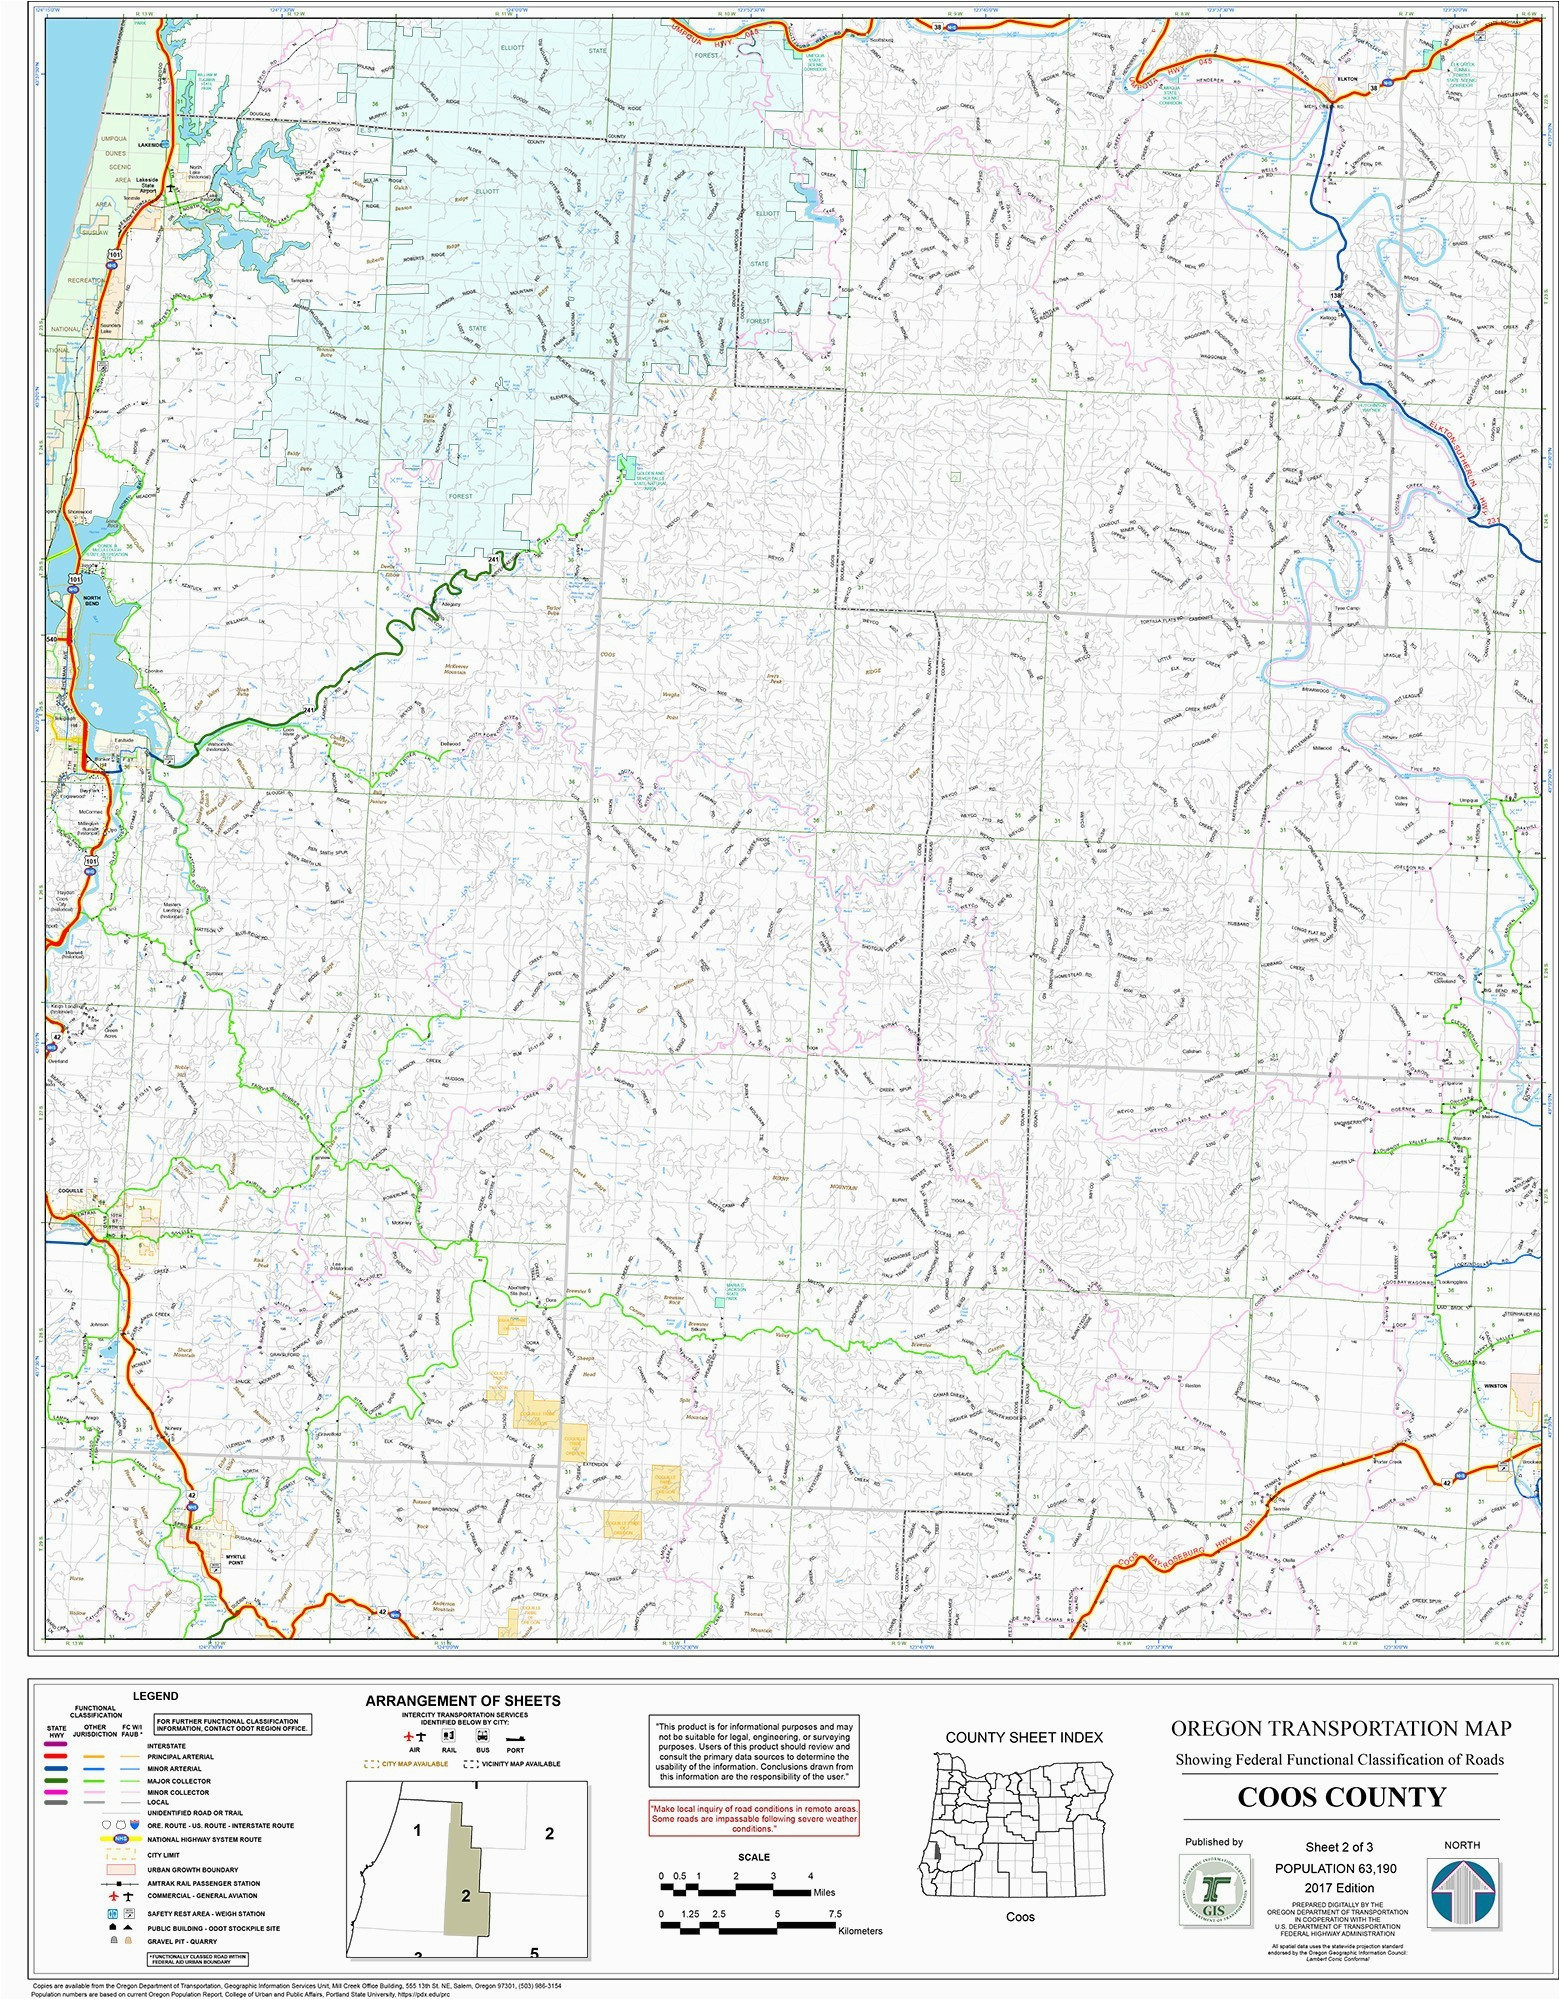 Tennessee Parcel Map Maps Driving Directions Shameonutc org